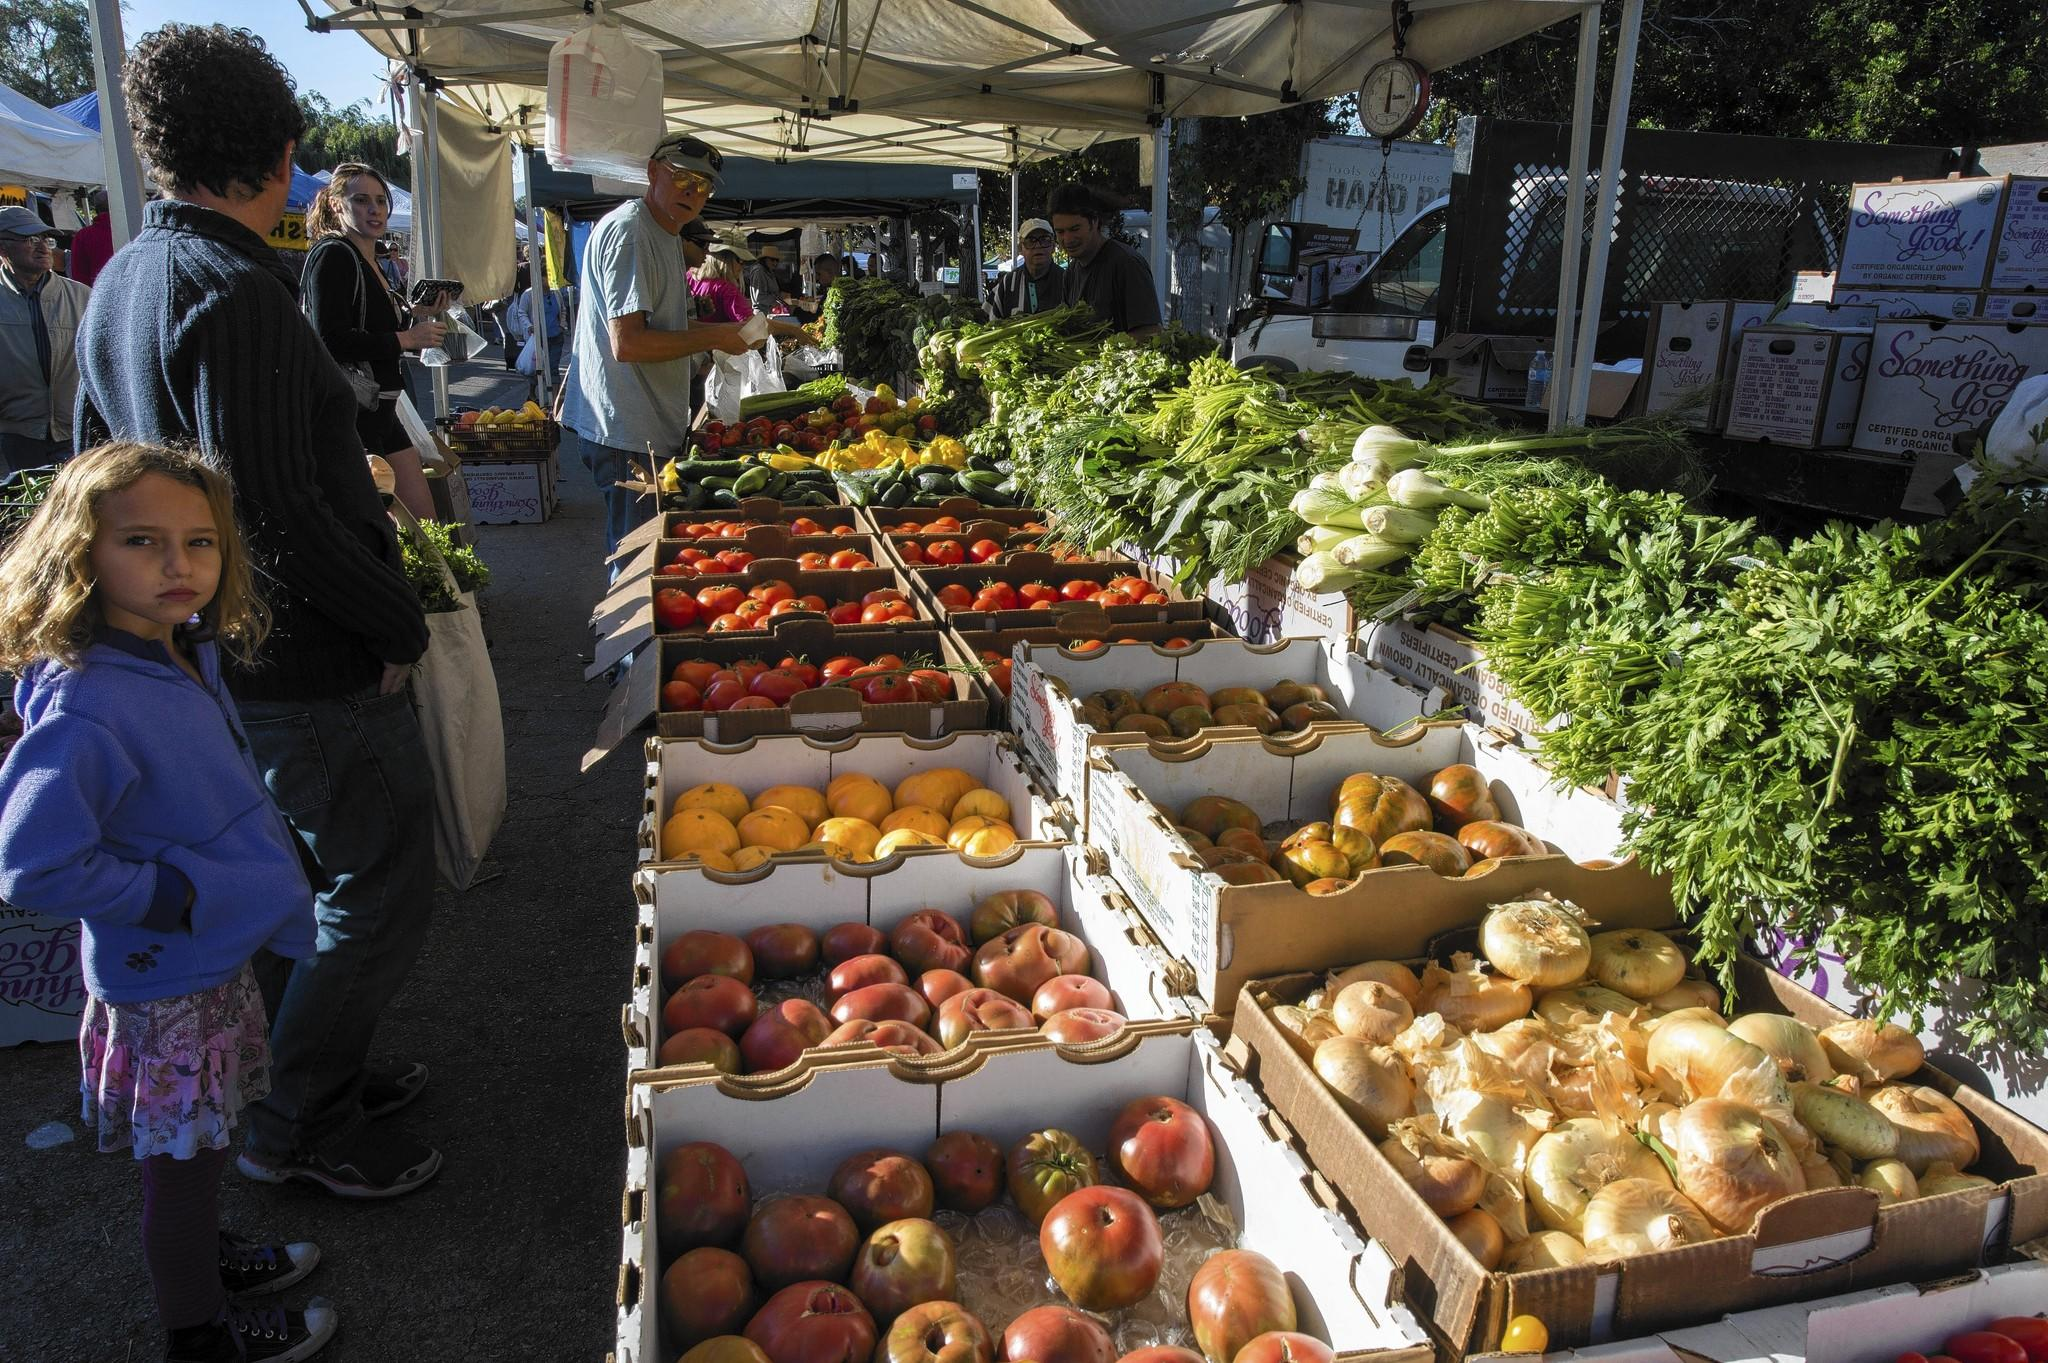 Produce is on display at the Encino farmers market. Los Angeles County is checking farmers markets to be sure that vendors actually grow the produce being sold, rather than resellling someone else's goods.